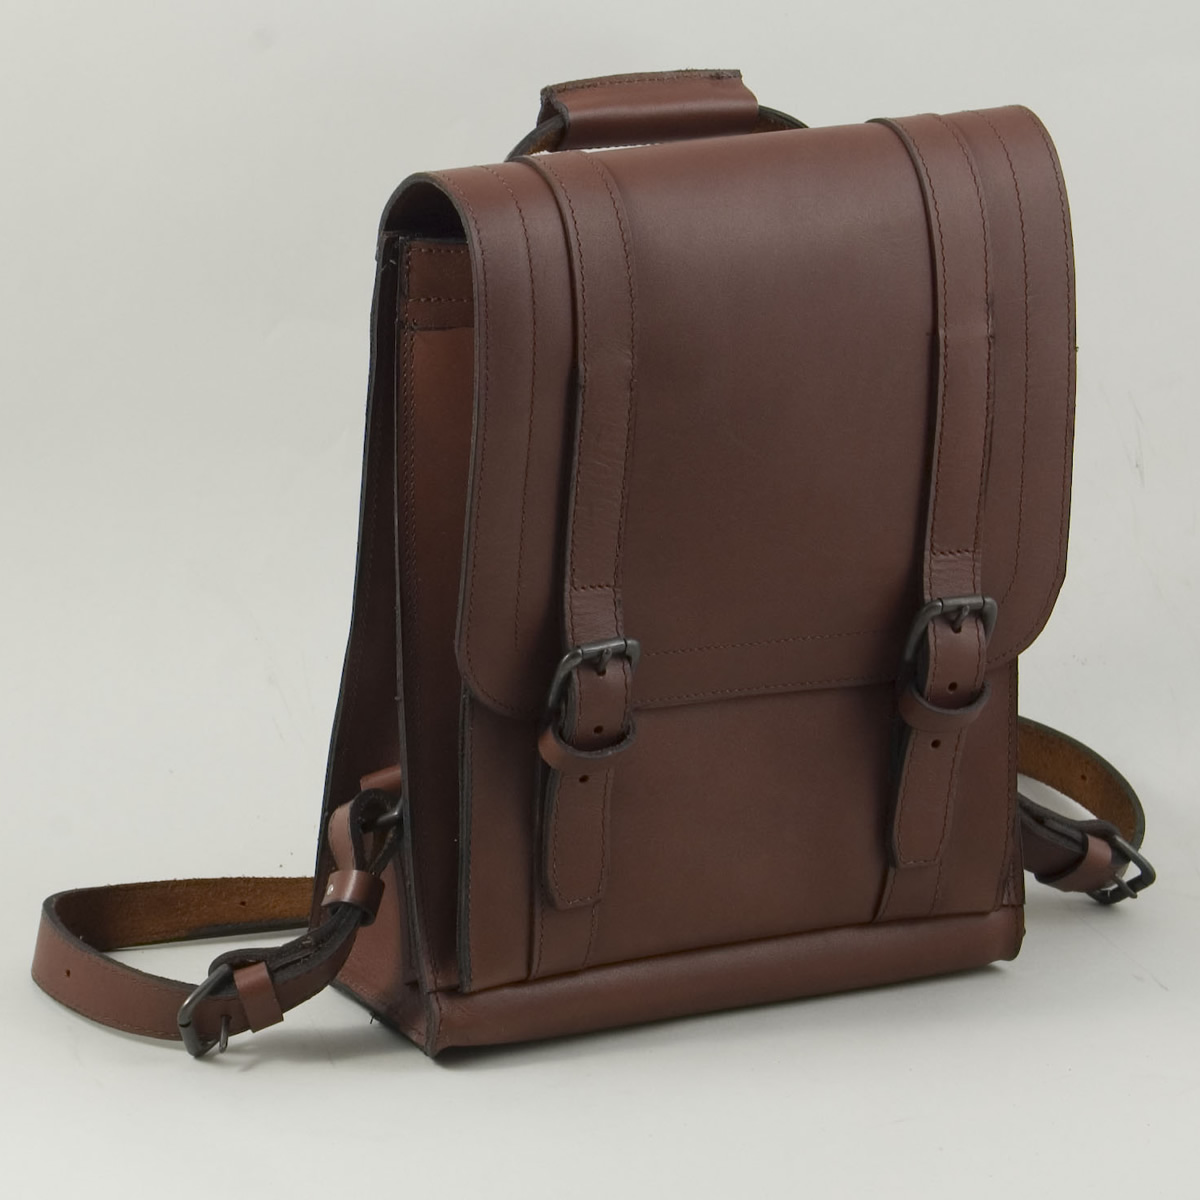 Small Handmade Leather Bookbag By Henry Tomkins